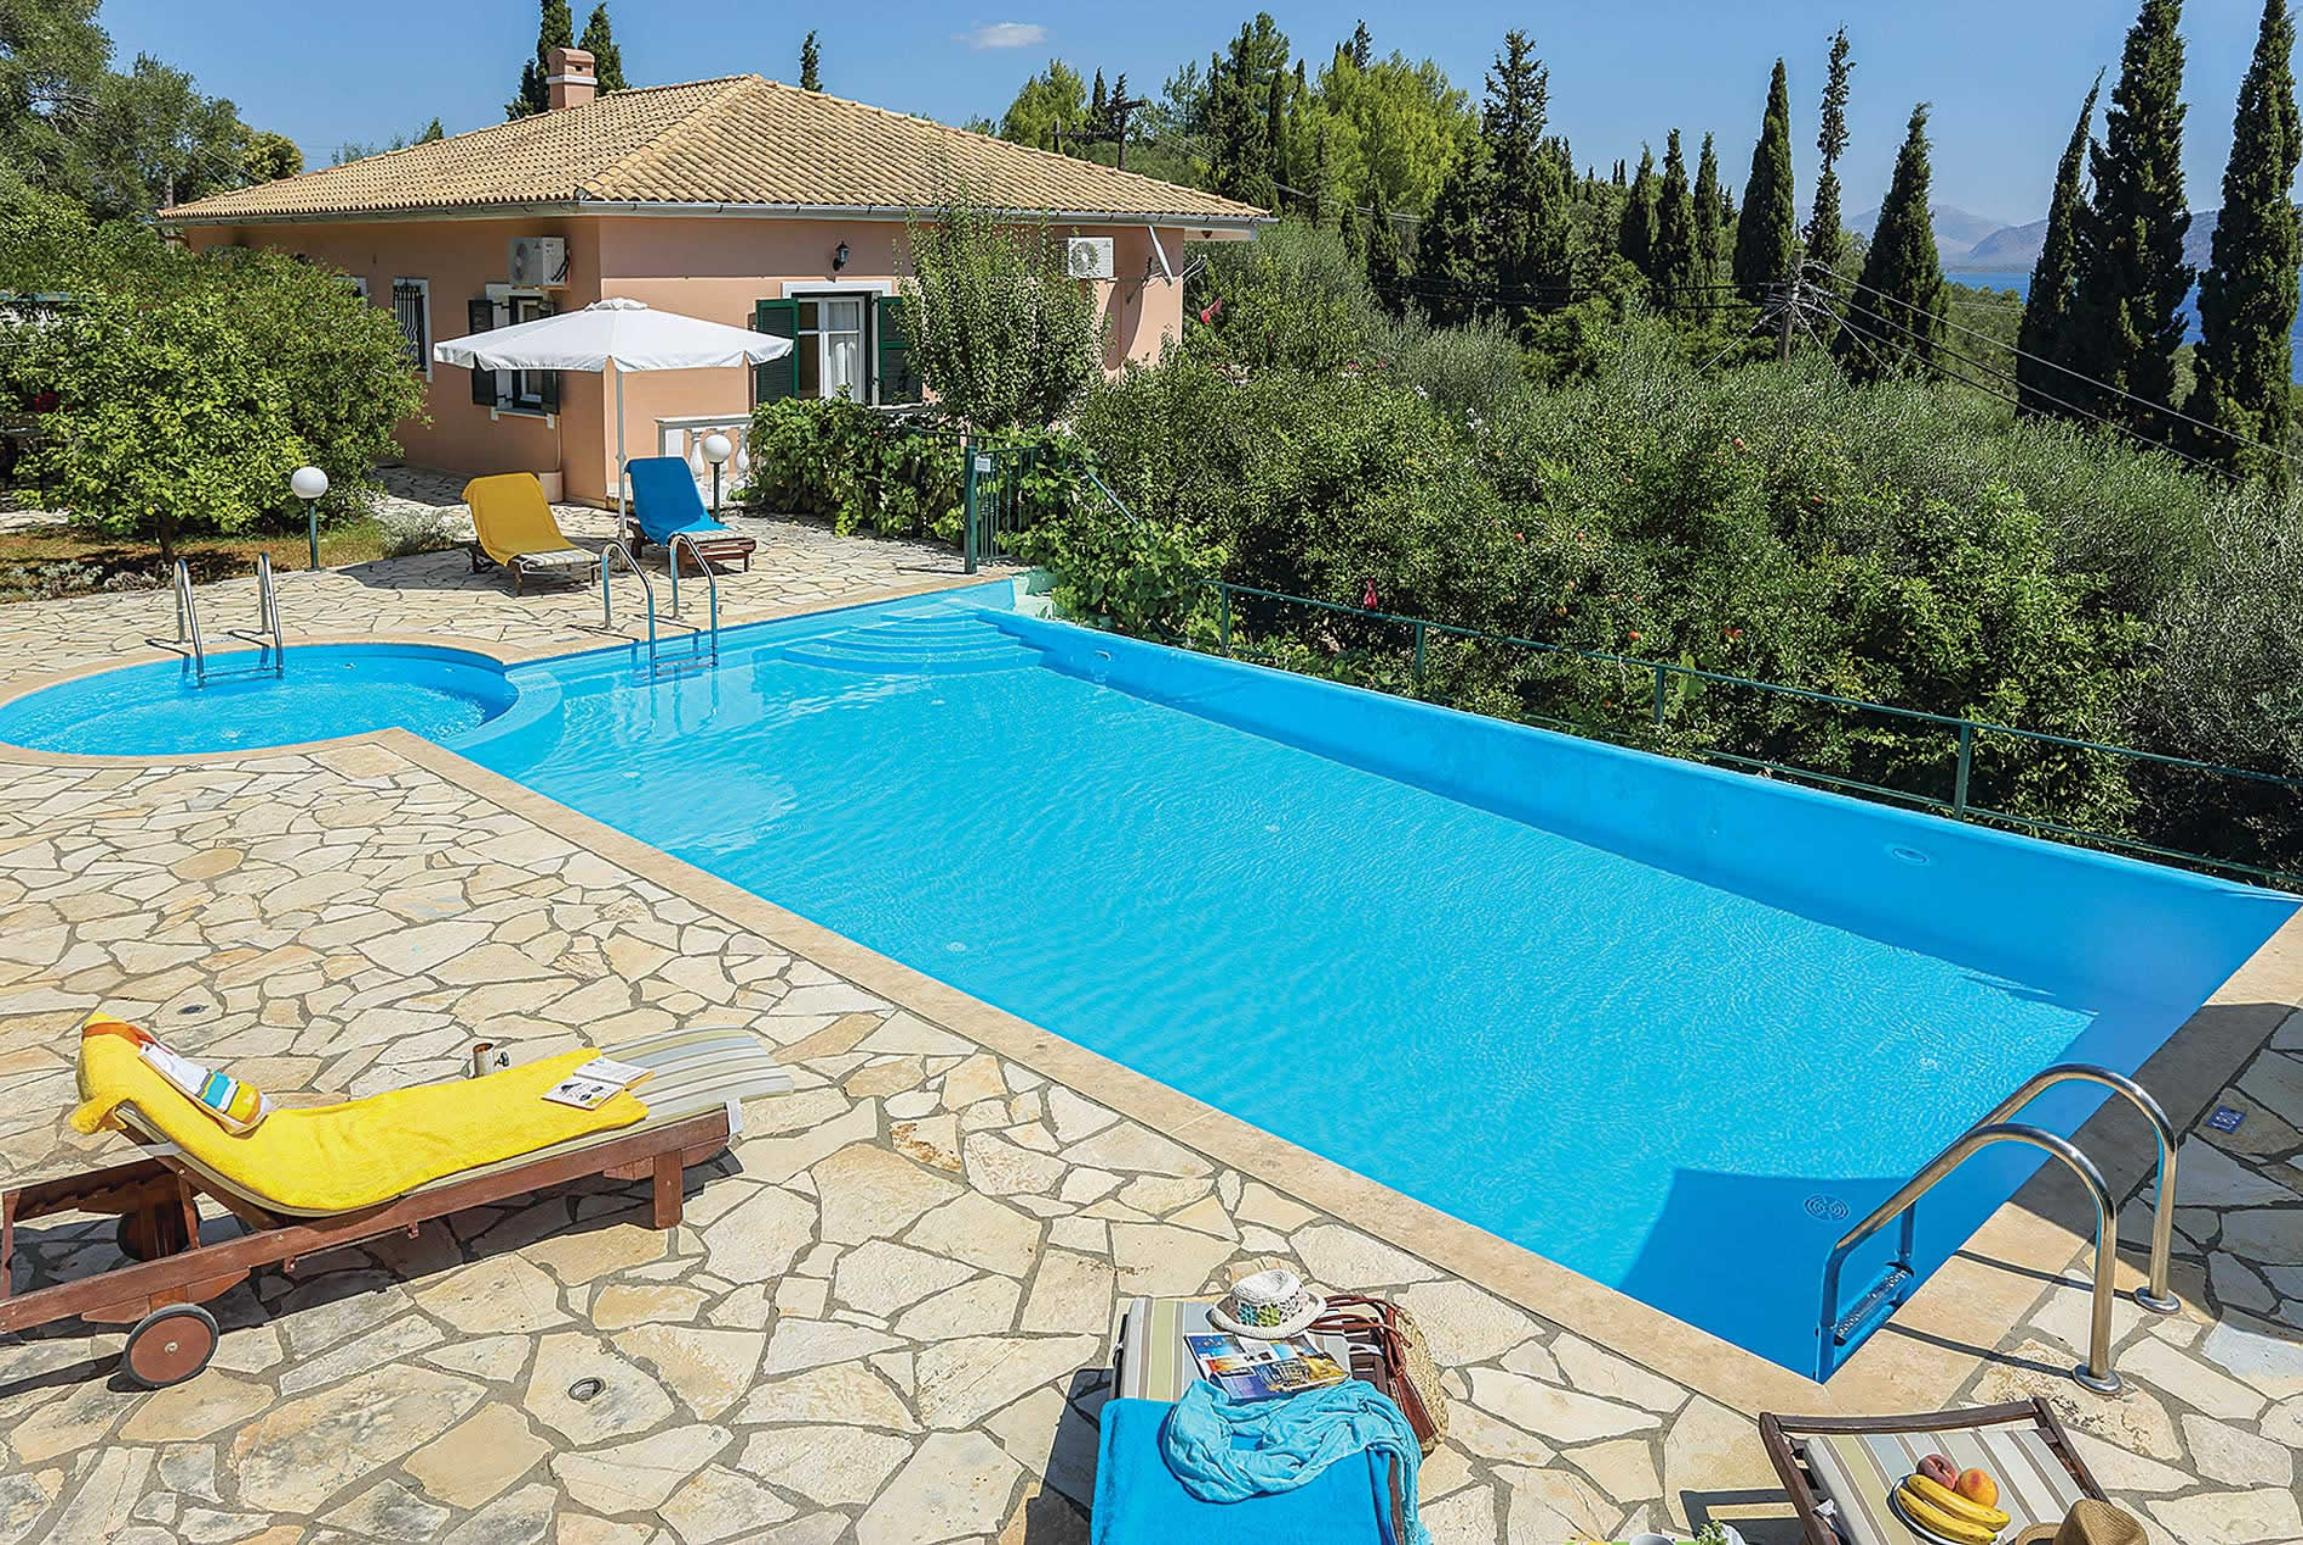 Read more about Tassos villa